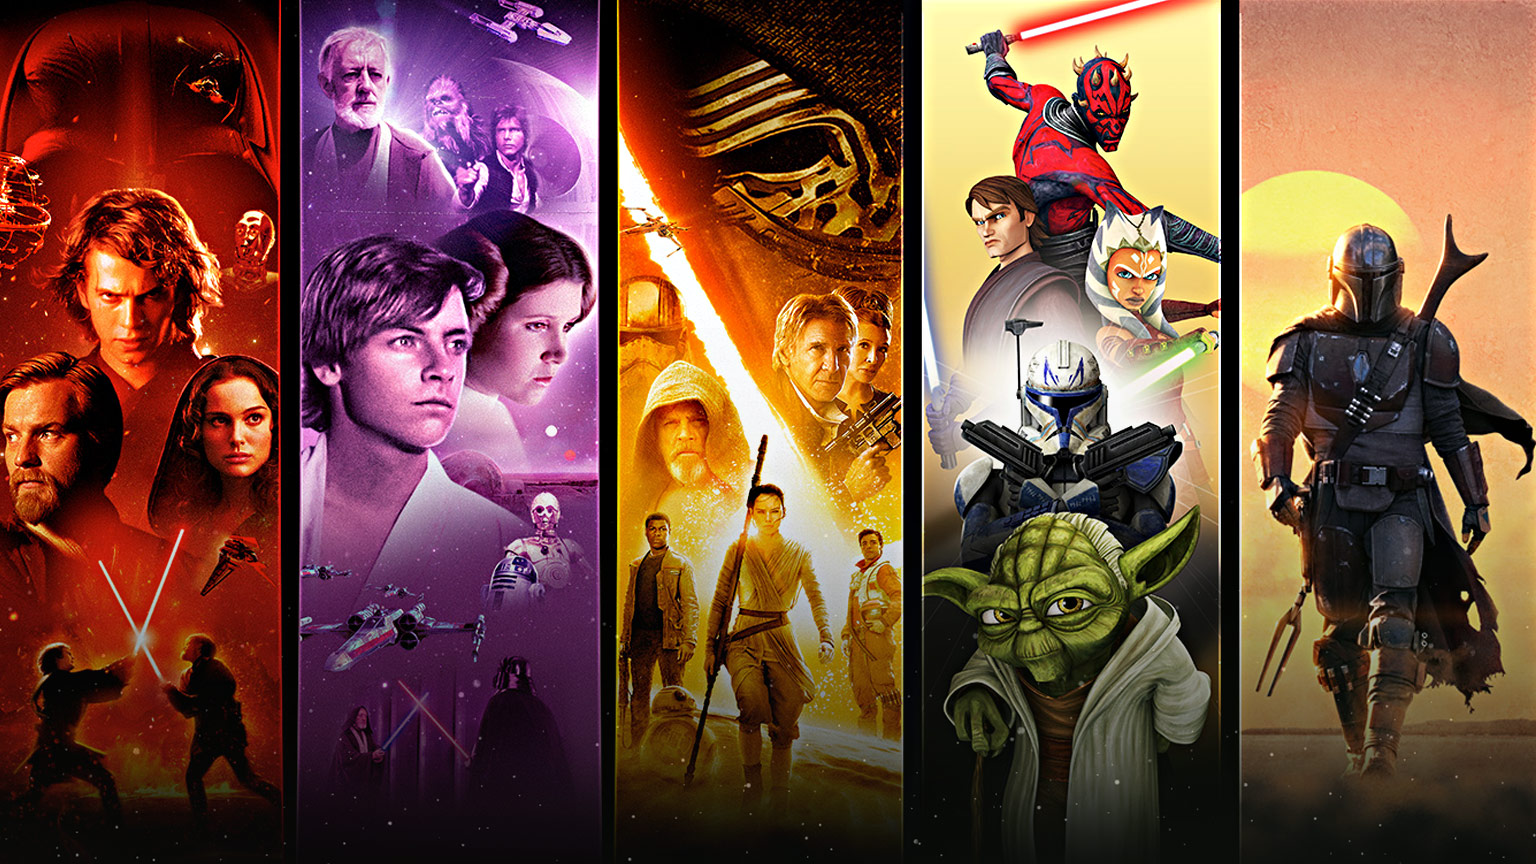 Collage of Star Wars programming coming to Disney+